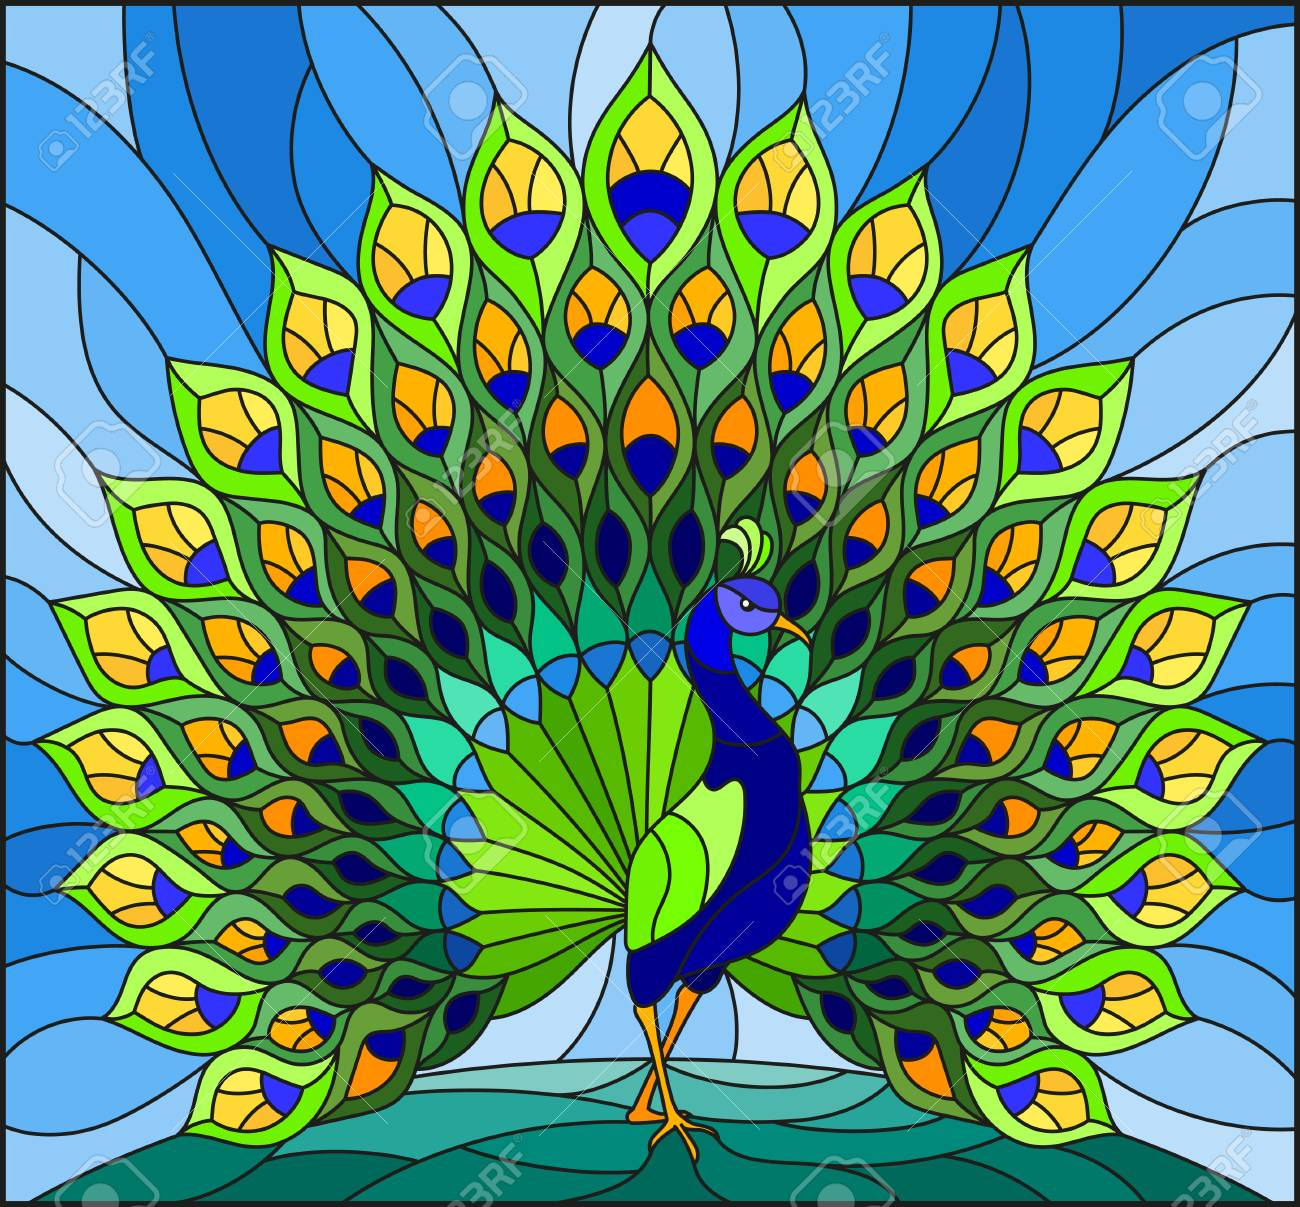 Illustration in stained glass style with colorful peacock on blue sky - 97576038